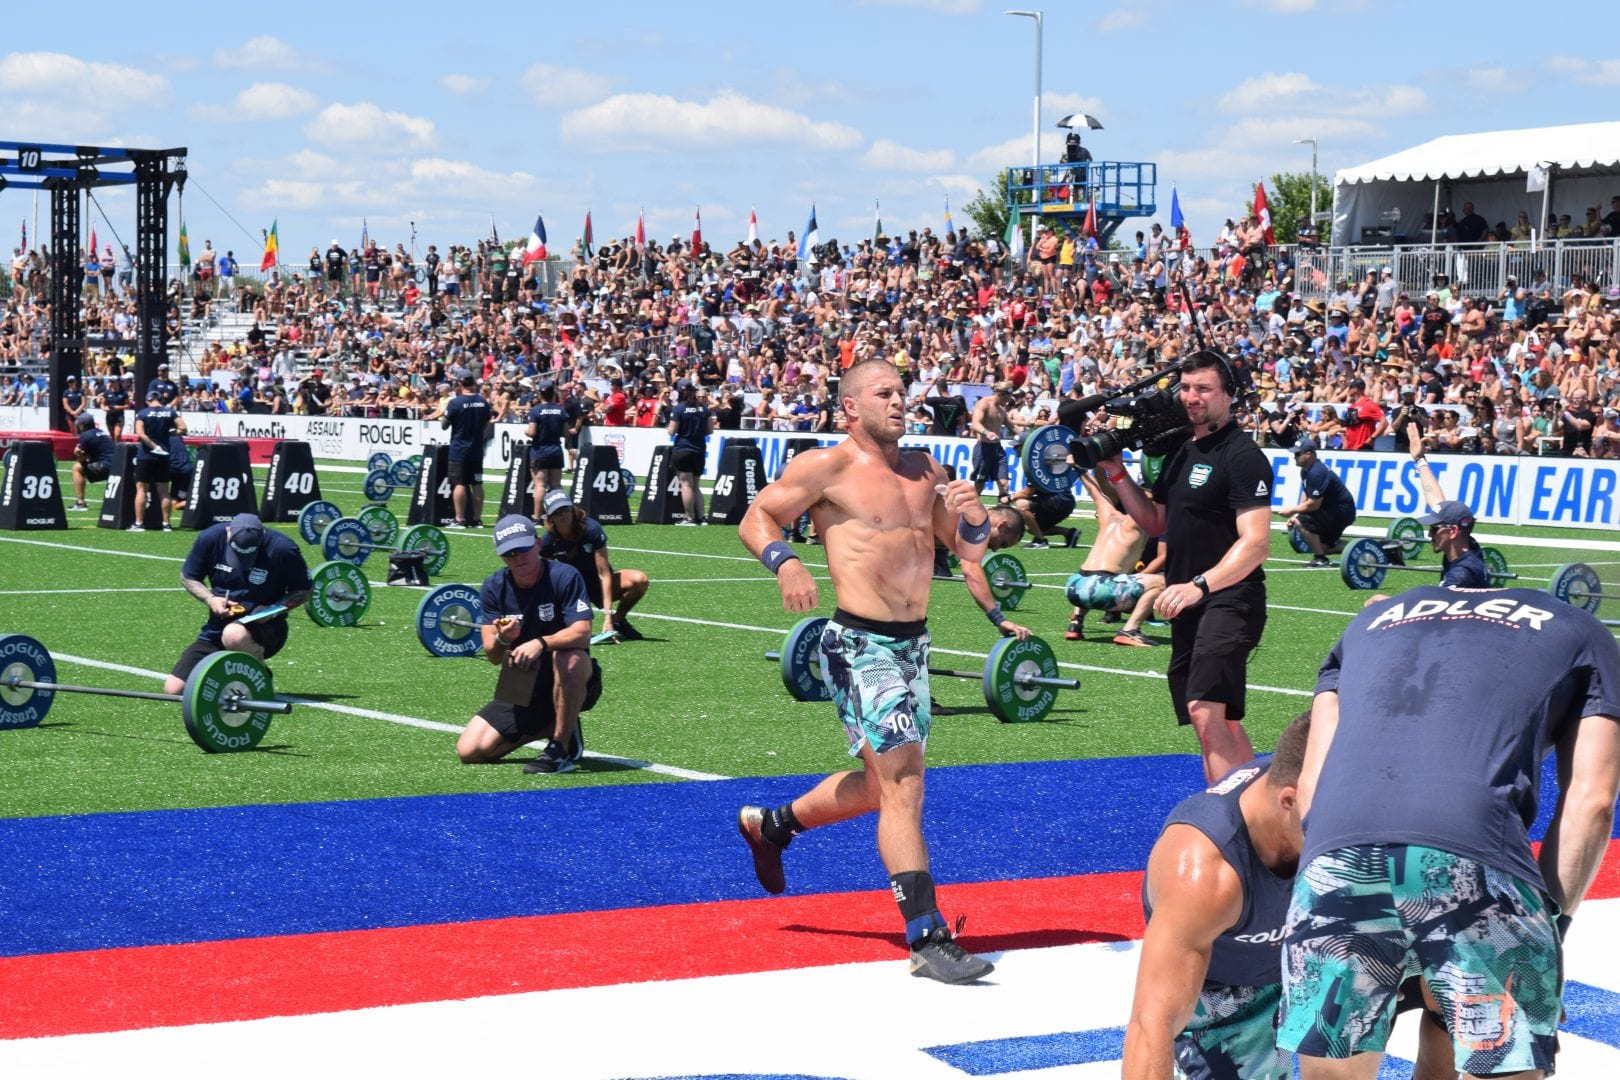 Jacob Heppner crosses the finish line of an event at the 2019 CrossFit Games.